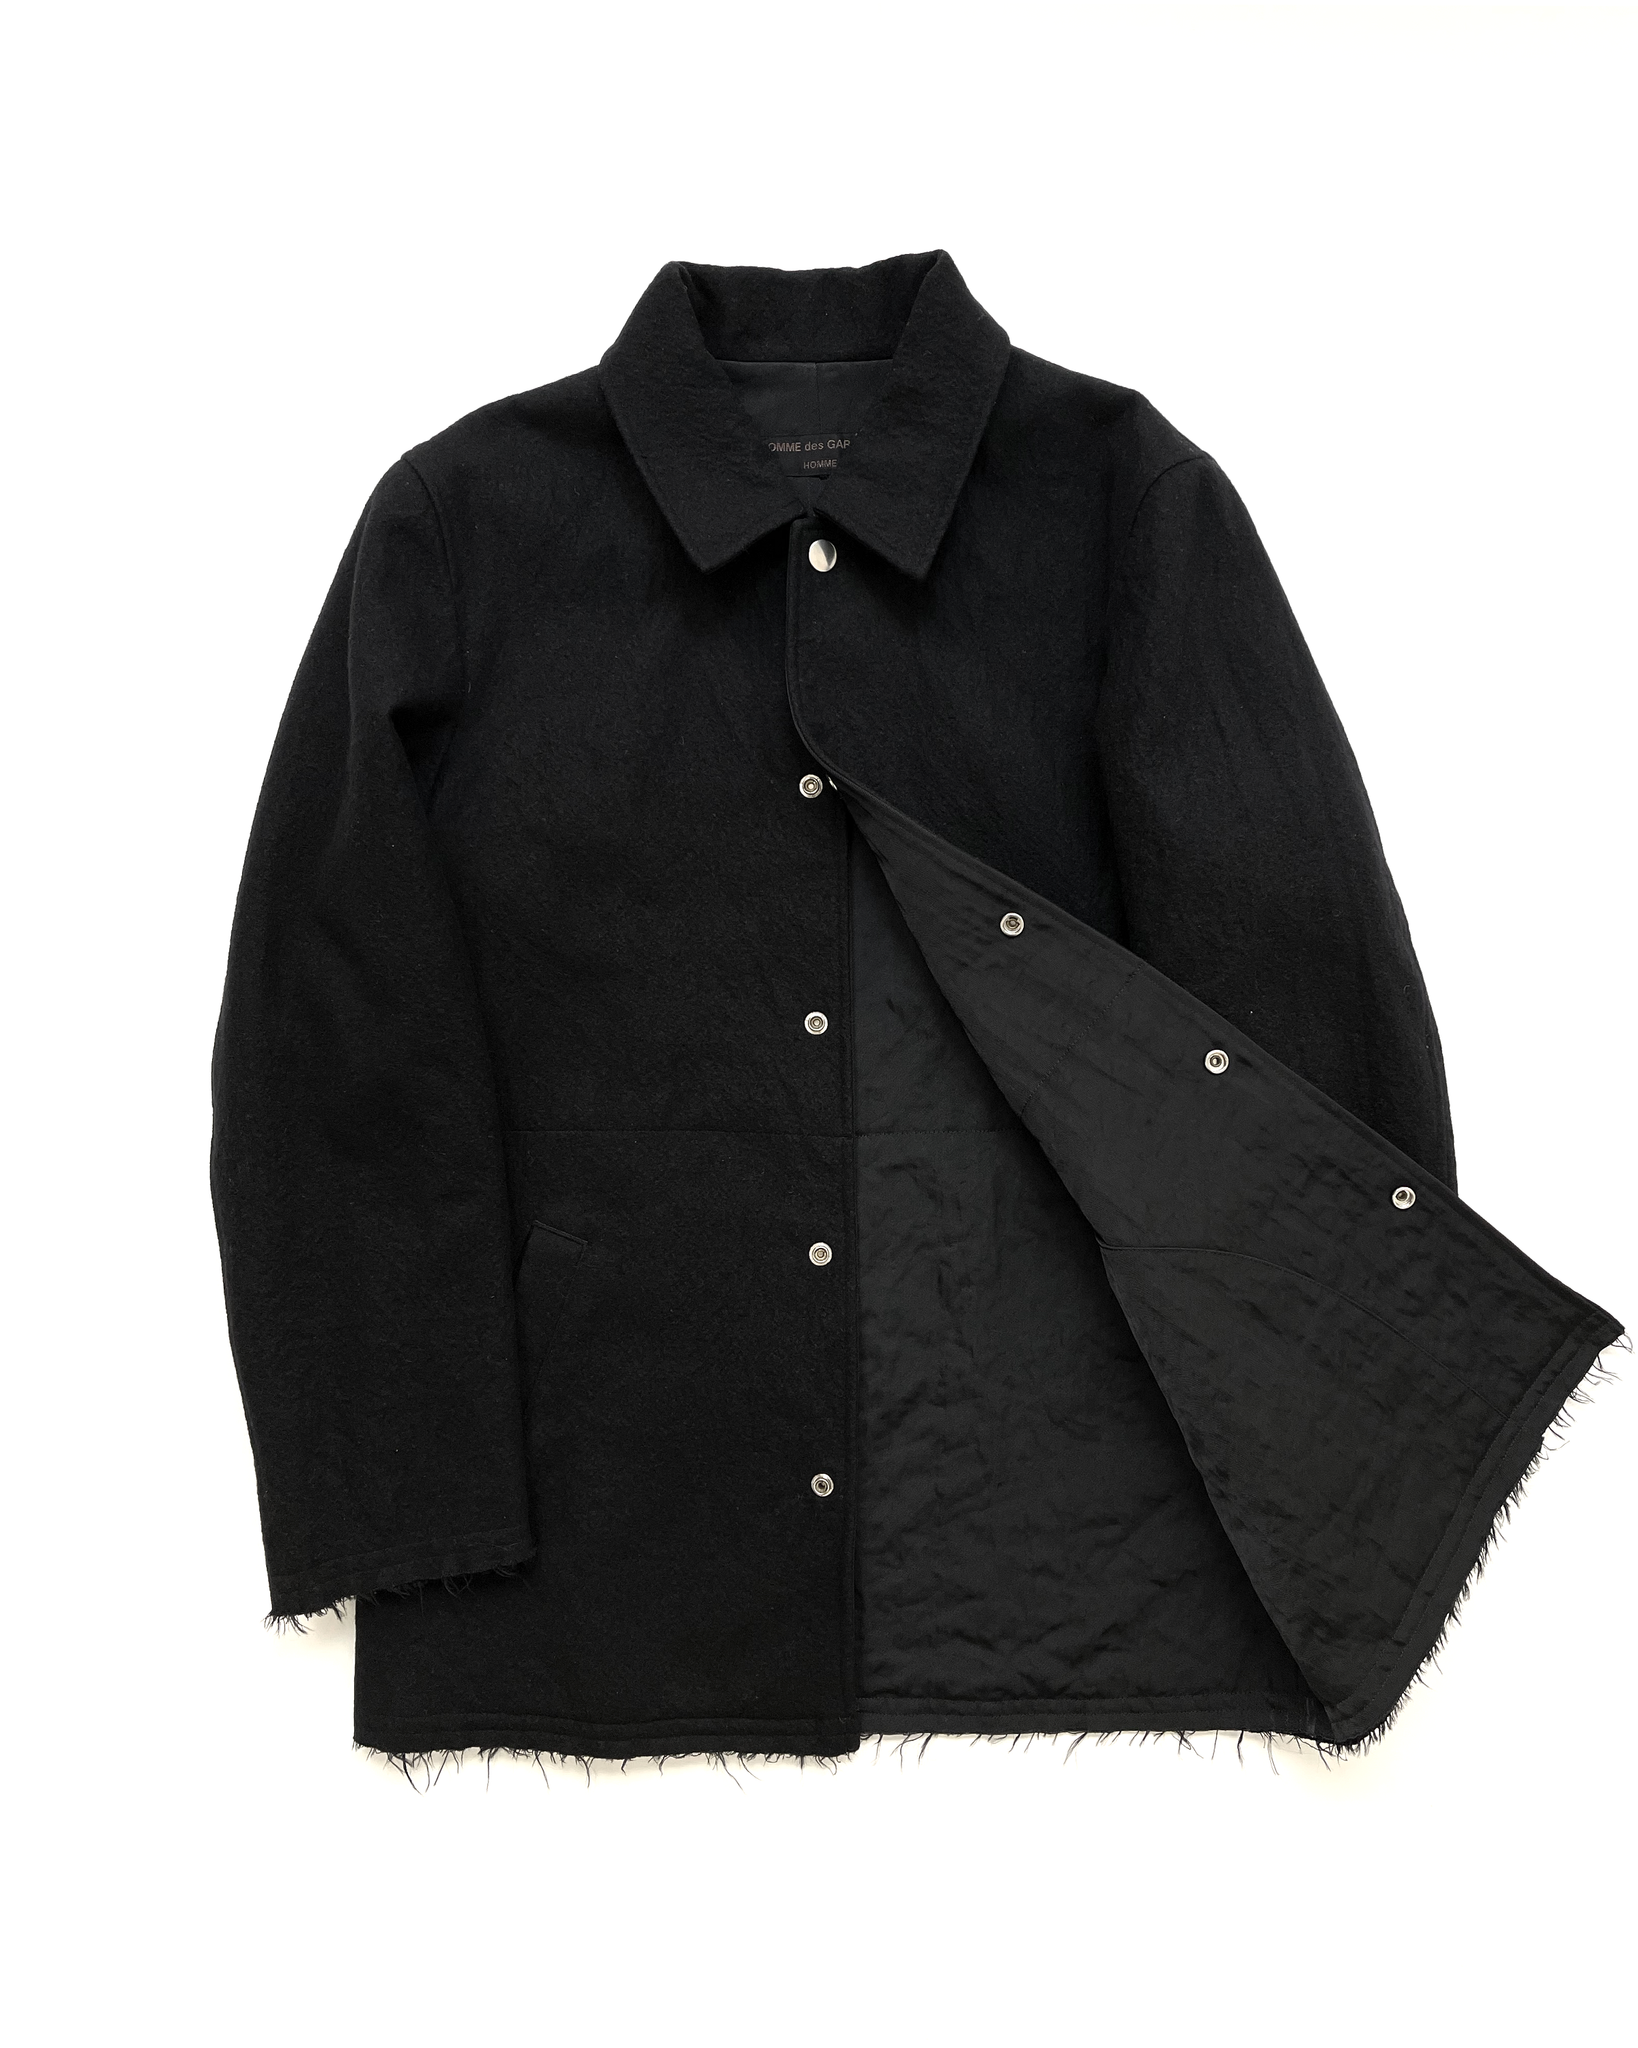 Comme des Garçons Homme Raw Edge Reversible Heavy Coat with Ballistic Nylon Interior AW2001